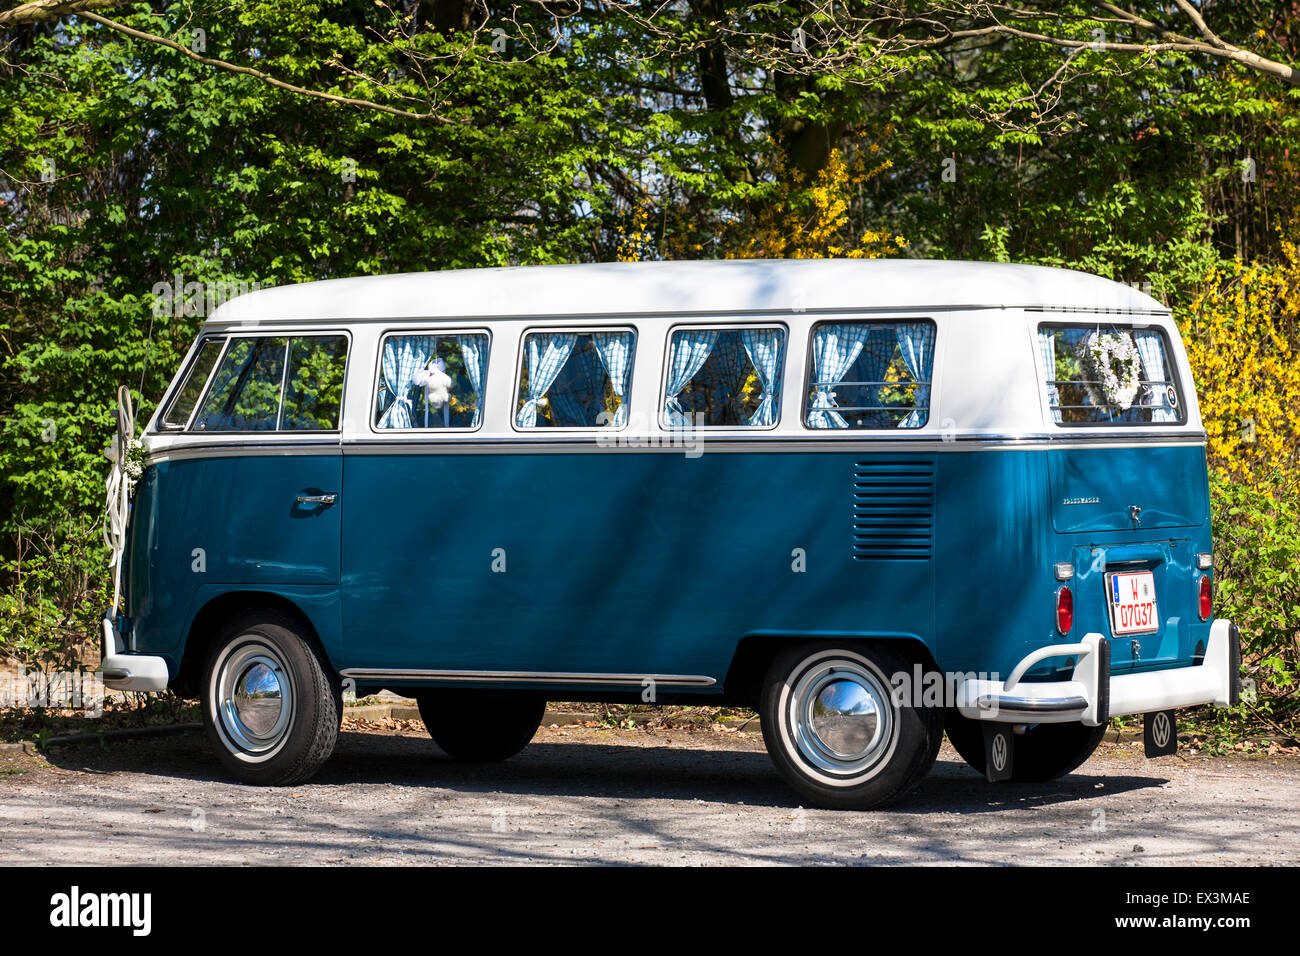 Europe, Germany, North Rhine-Westphalia, Muensterland, region, Volkswagen T1, VW van, called Bulli.  Euroa, Deutschland, - Stock Image